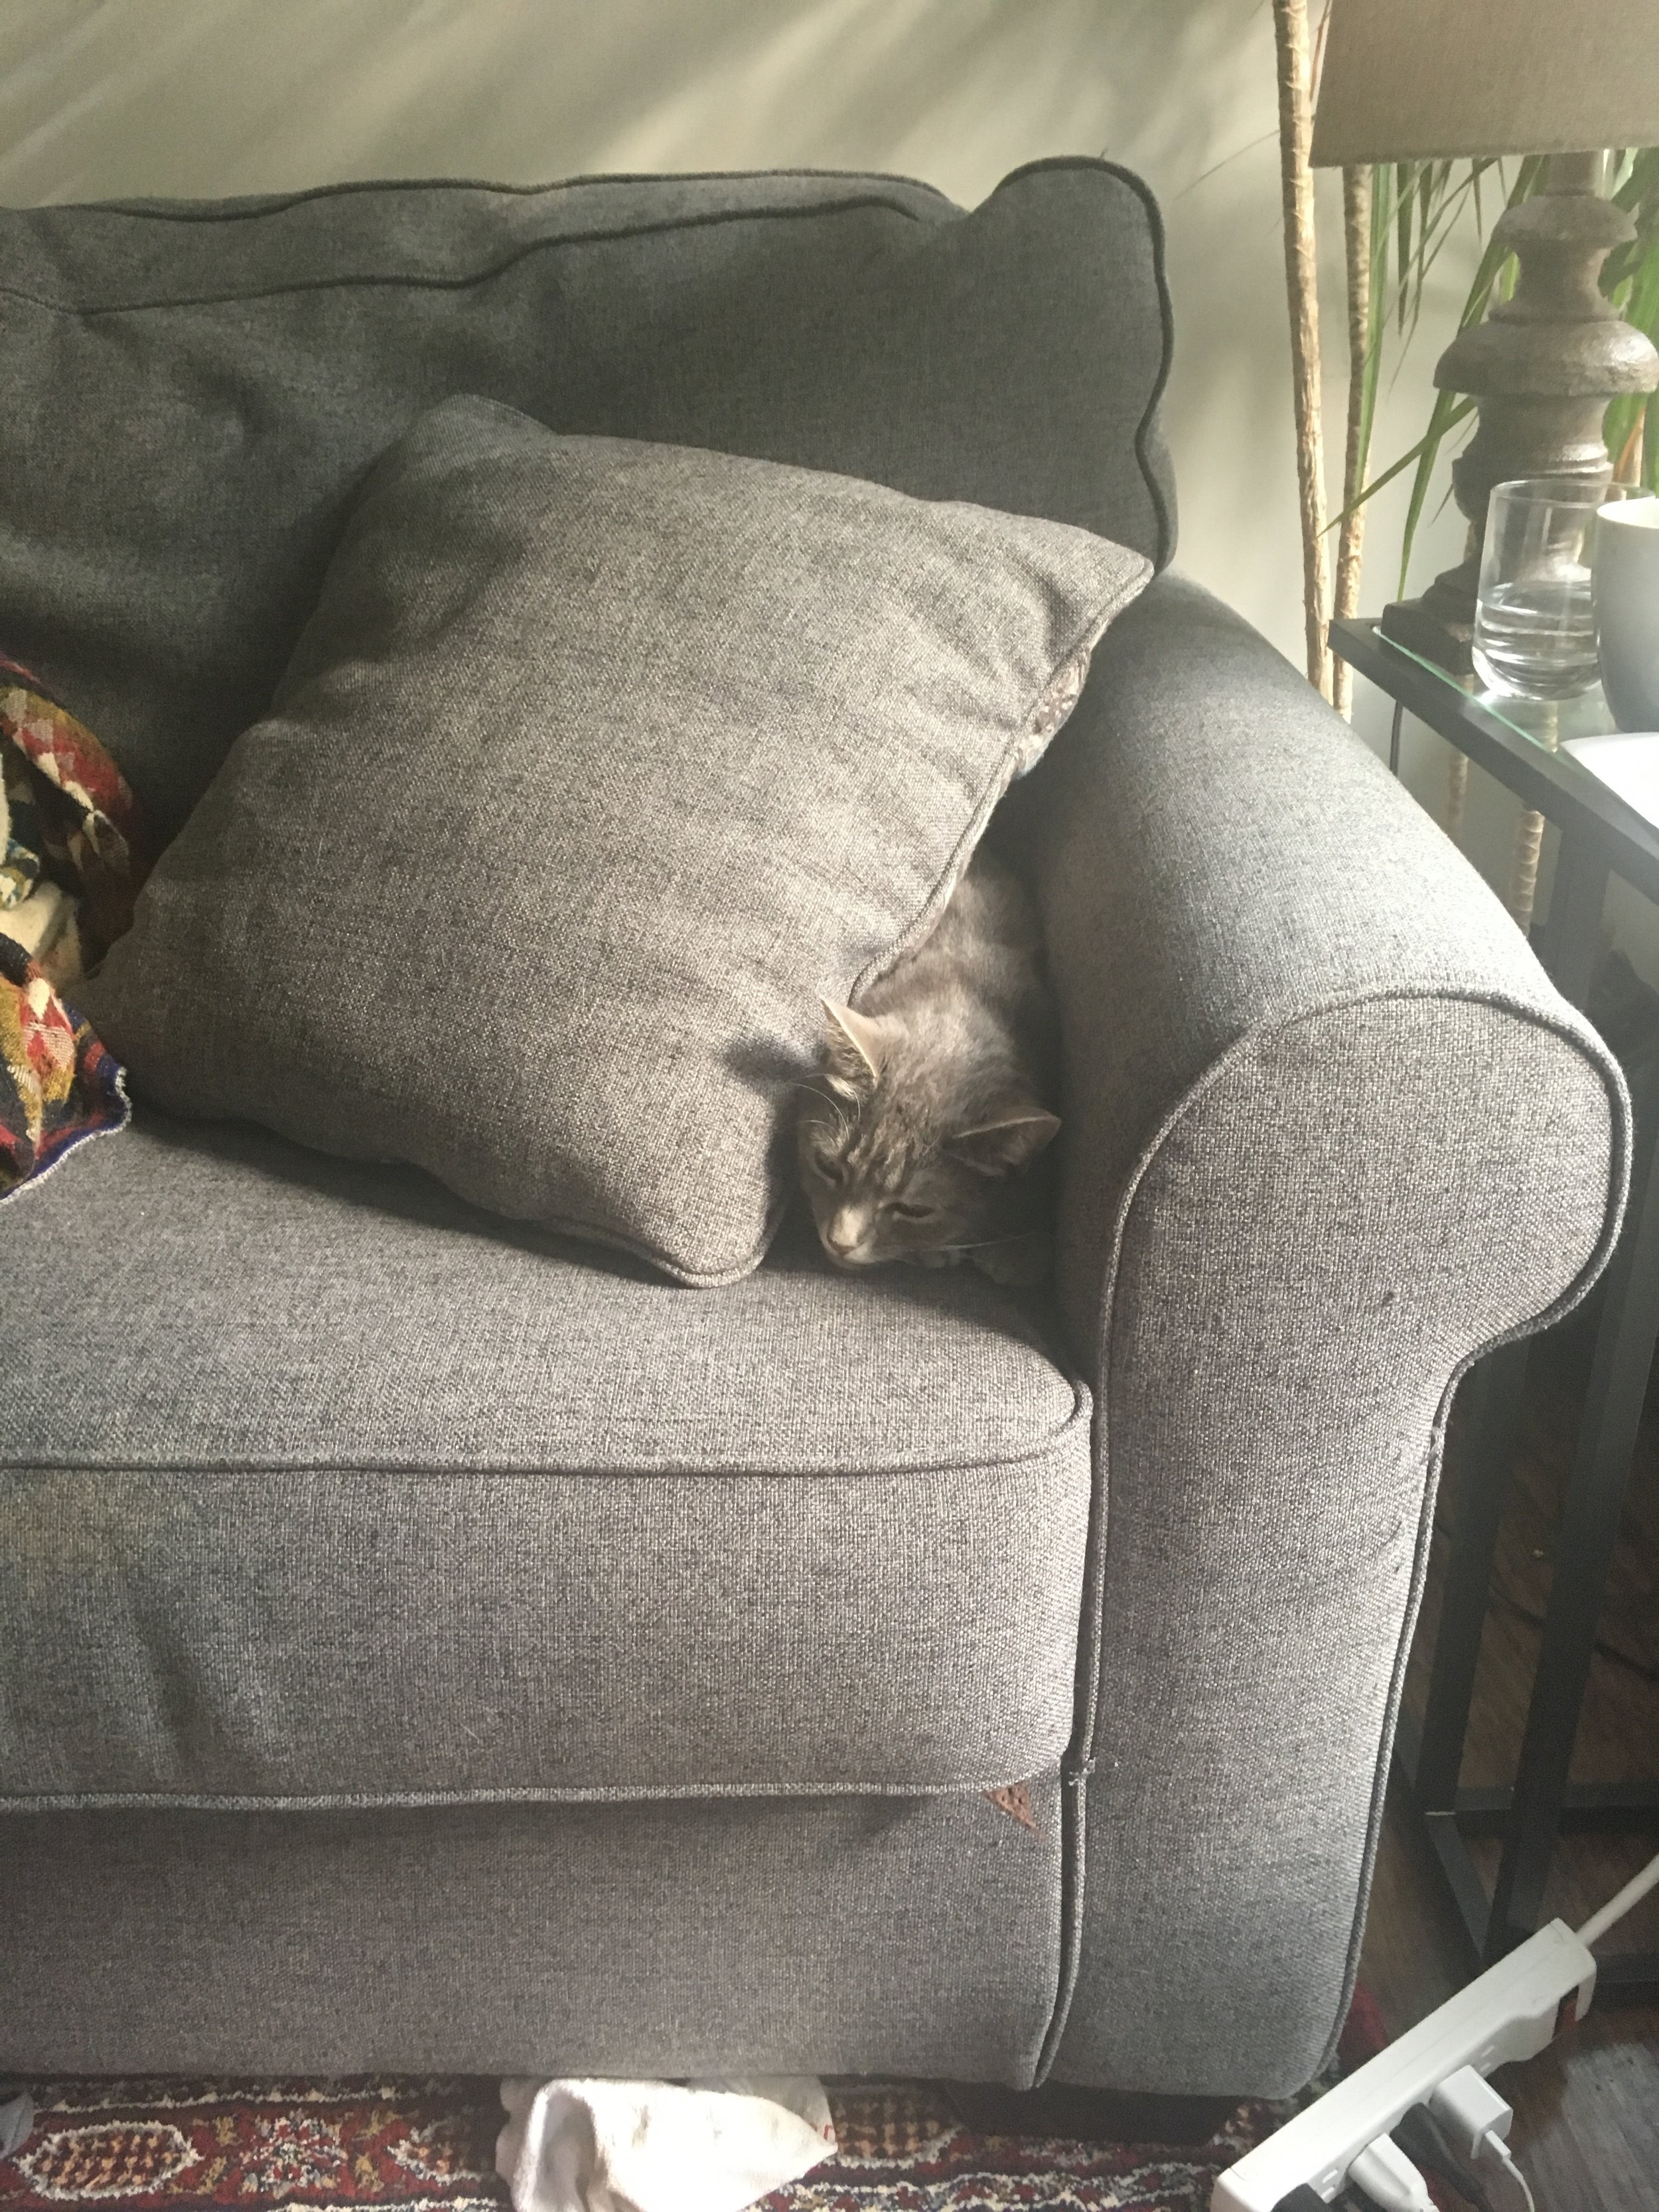 Because camouflaging yourself into the couch isn't always the best option.